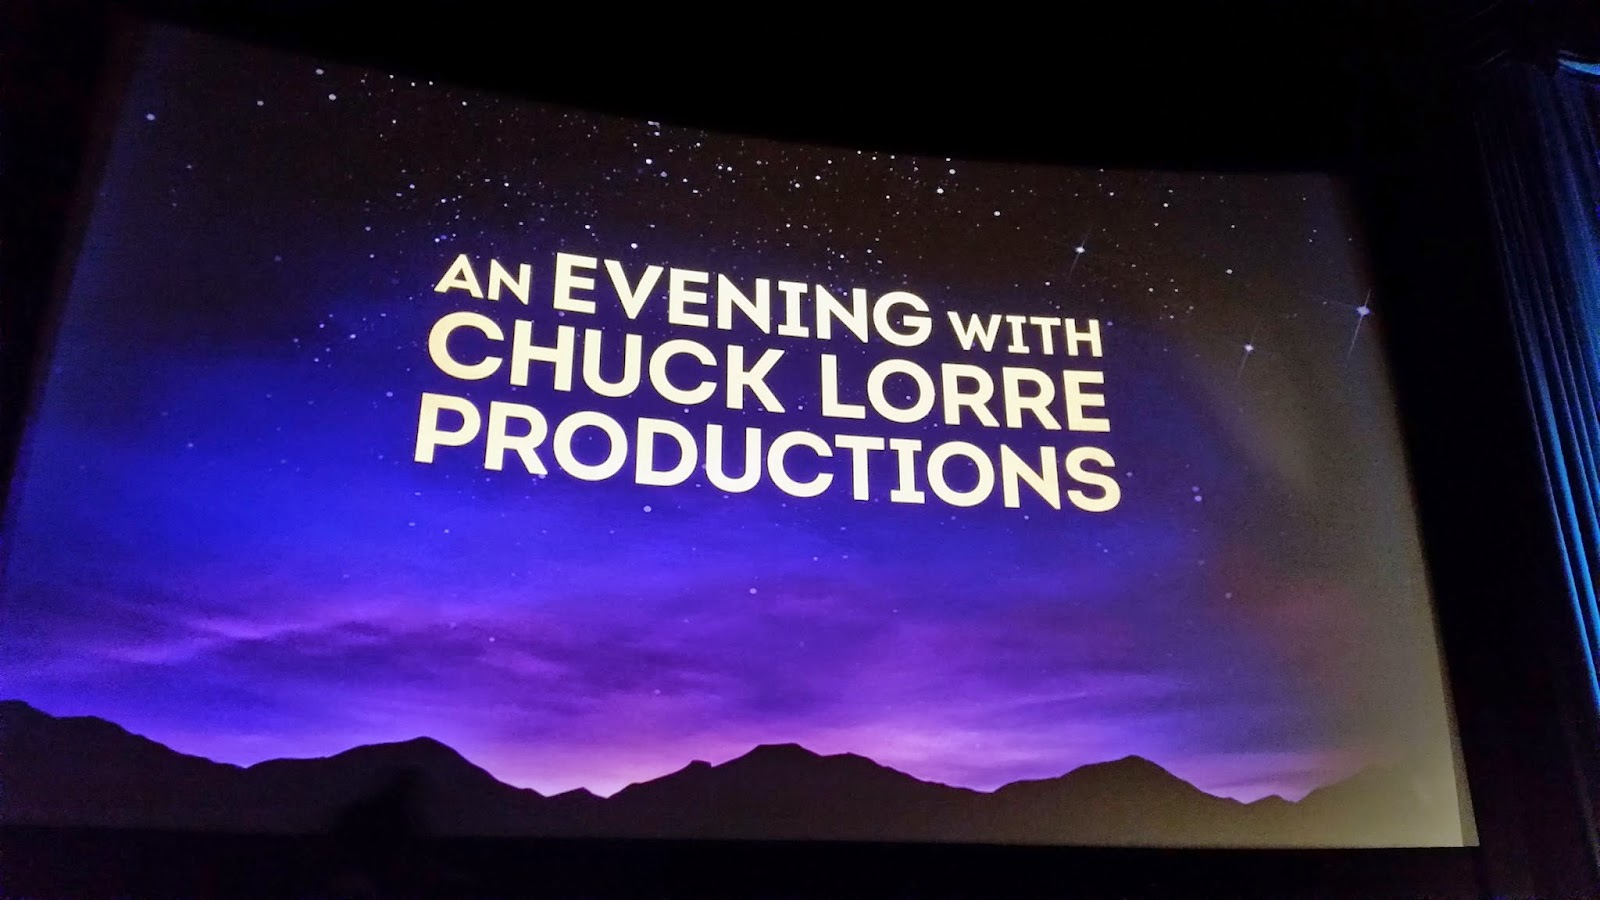 An Evening with Chuck Lorre Productions